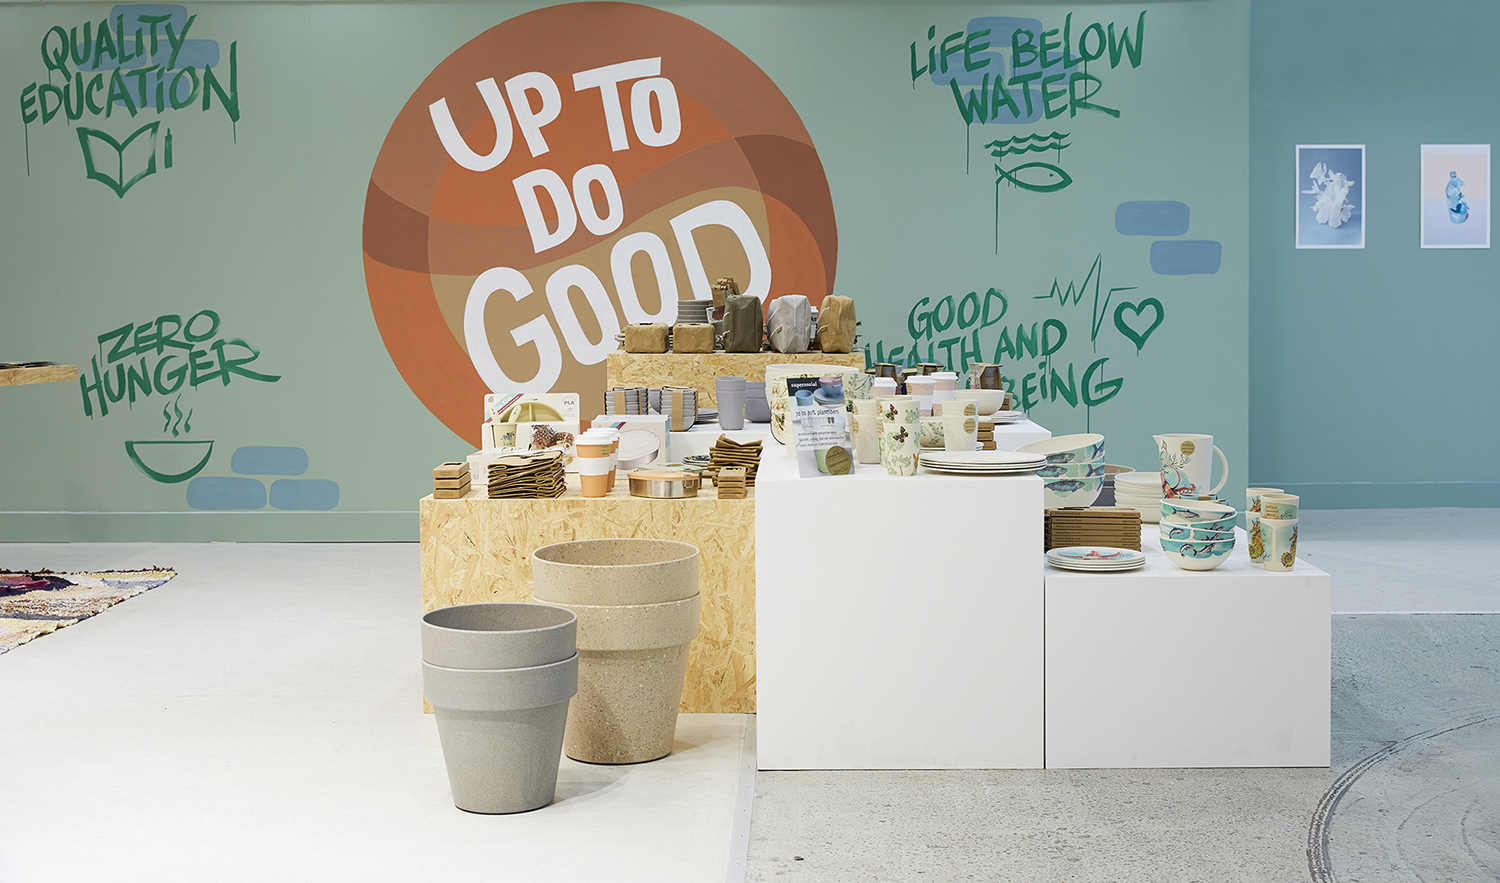 UP TO DO GOOD - Schiphol Plaza